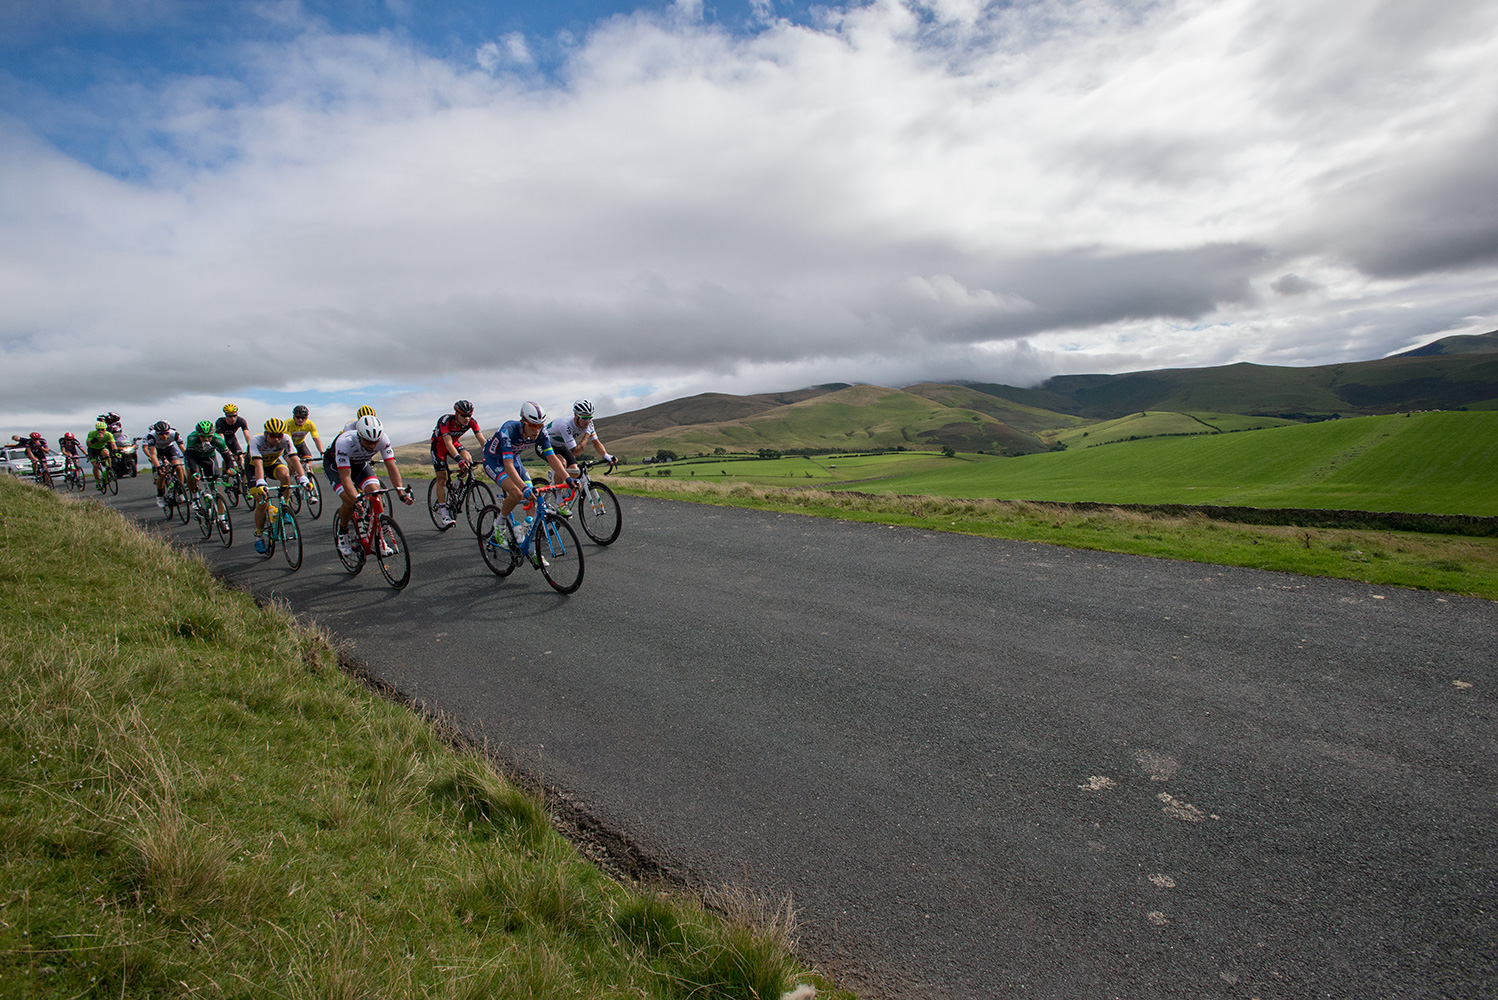 Xandro MEURISSE of Belgium leads the breakaway group over Caldbeck Commons in Cumbria on Stage 2